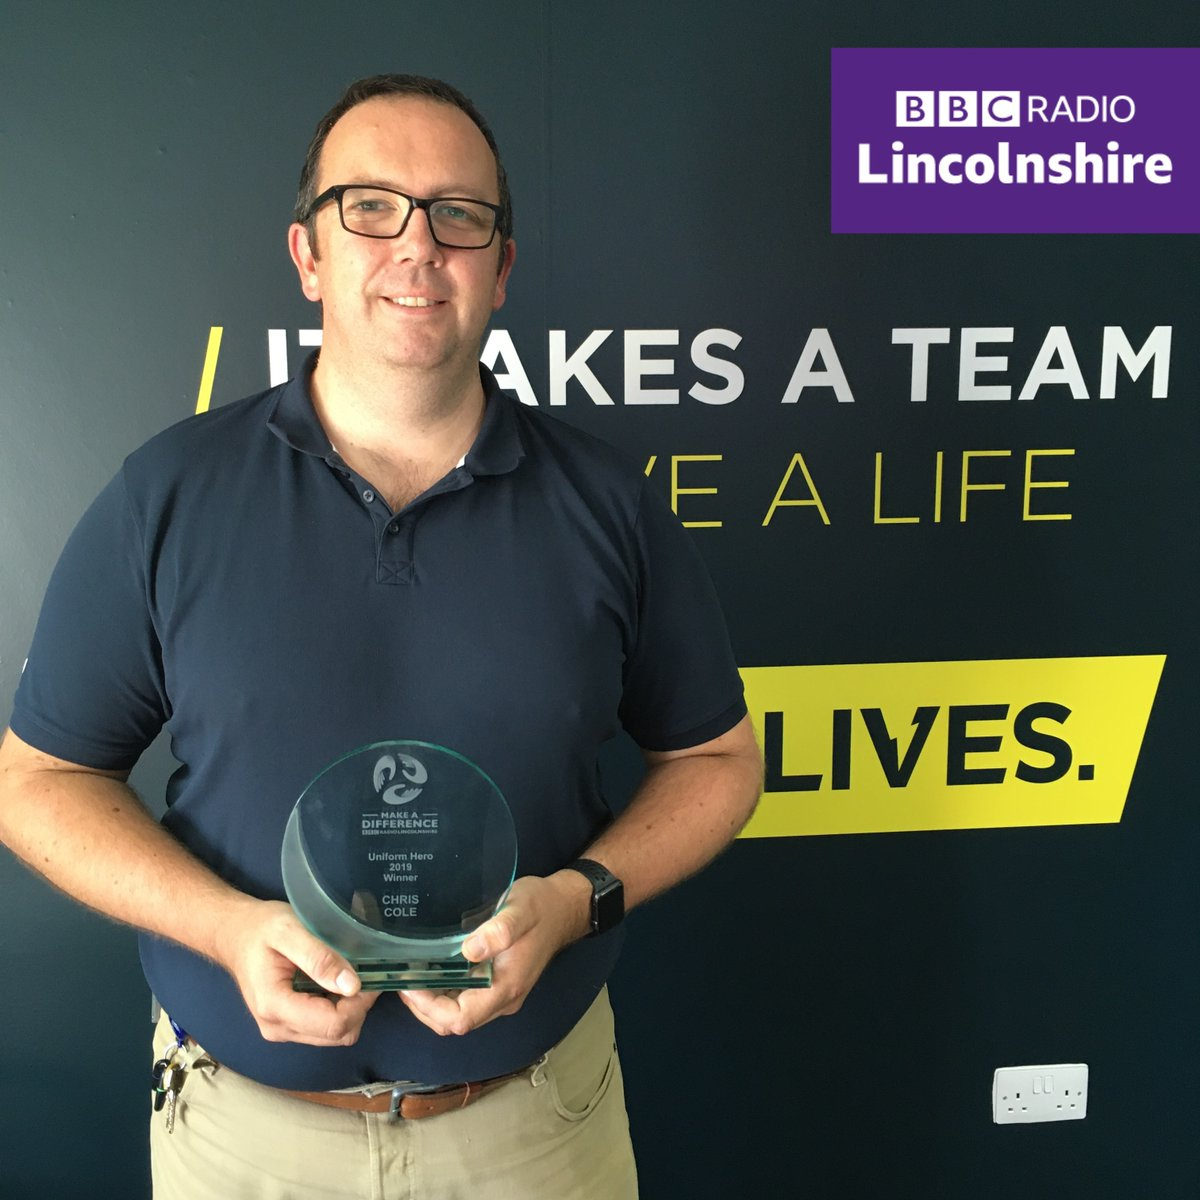 At last! We've been able to deliver the trophies to our 2019 #BBCMakeADifference award winners!  Hear Chris Cole (@nashetho), @liveshq Paramedic - 1 of our #UniformHero winners being surprised by @melvynprior with a #sociallydistanced trophy presentation: https://t.co/9D35cc0Oe7 https://t.co/5xu4R51WuG